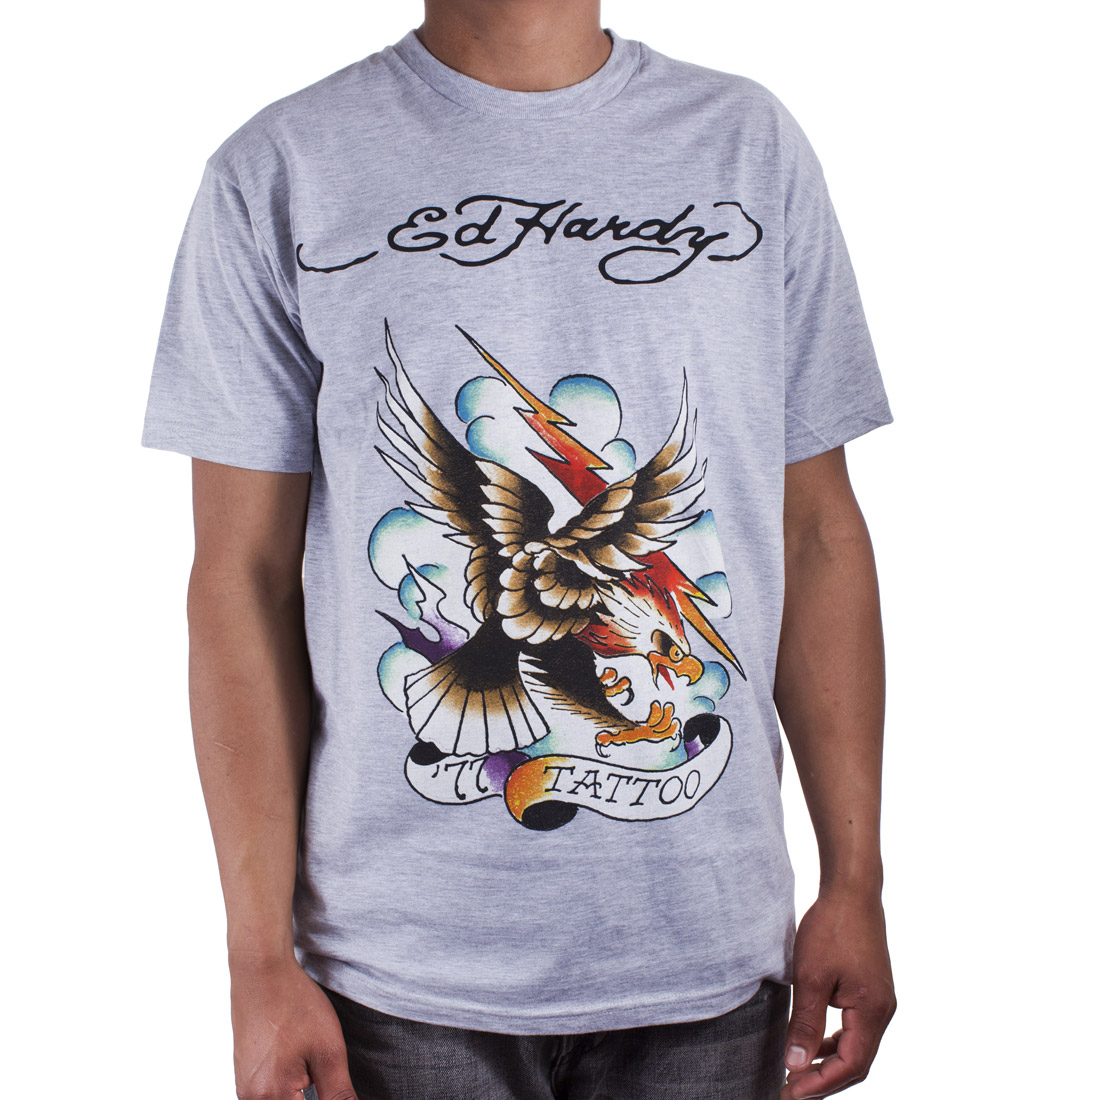 Ed Hardy Mens 77 Eagle Tattoo Graphic Tee Shirt - Grey